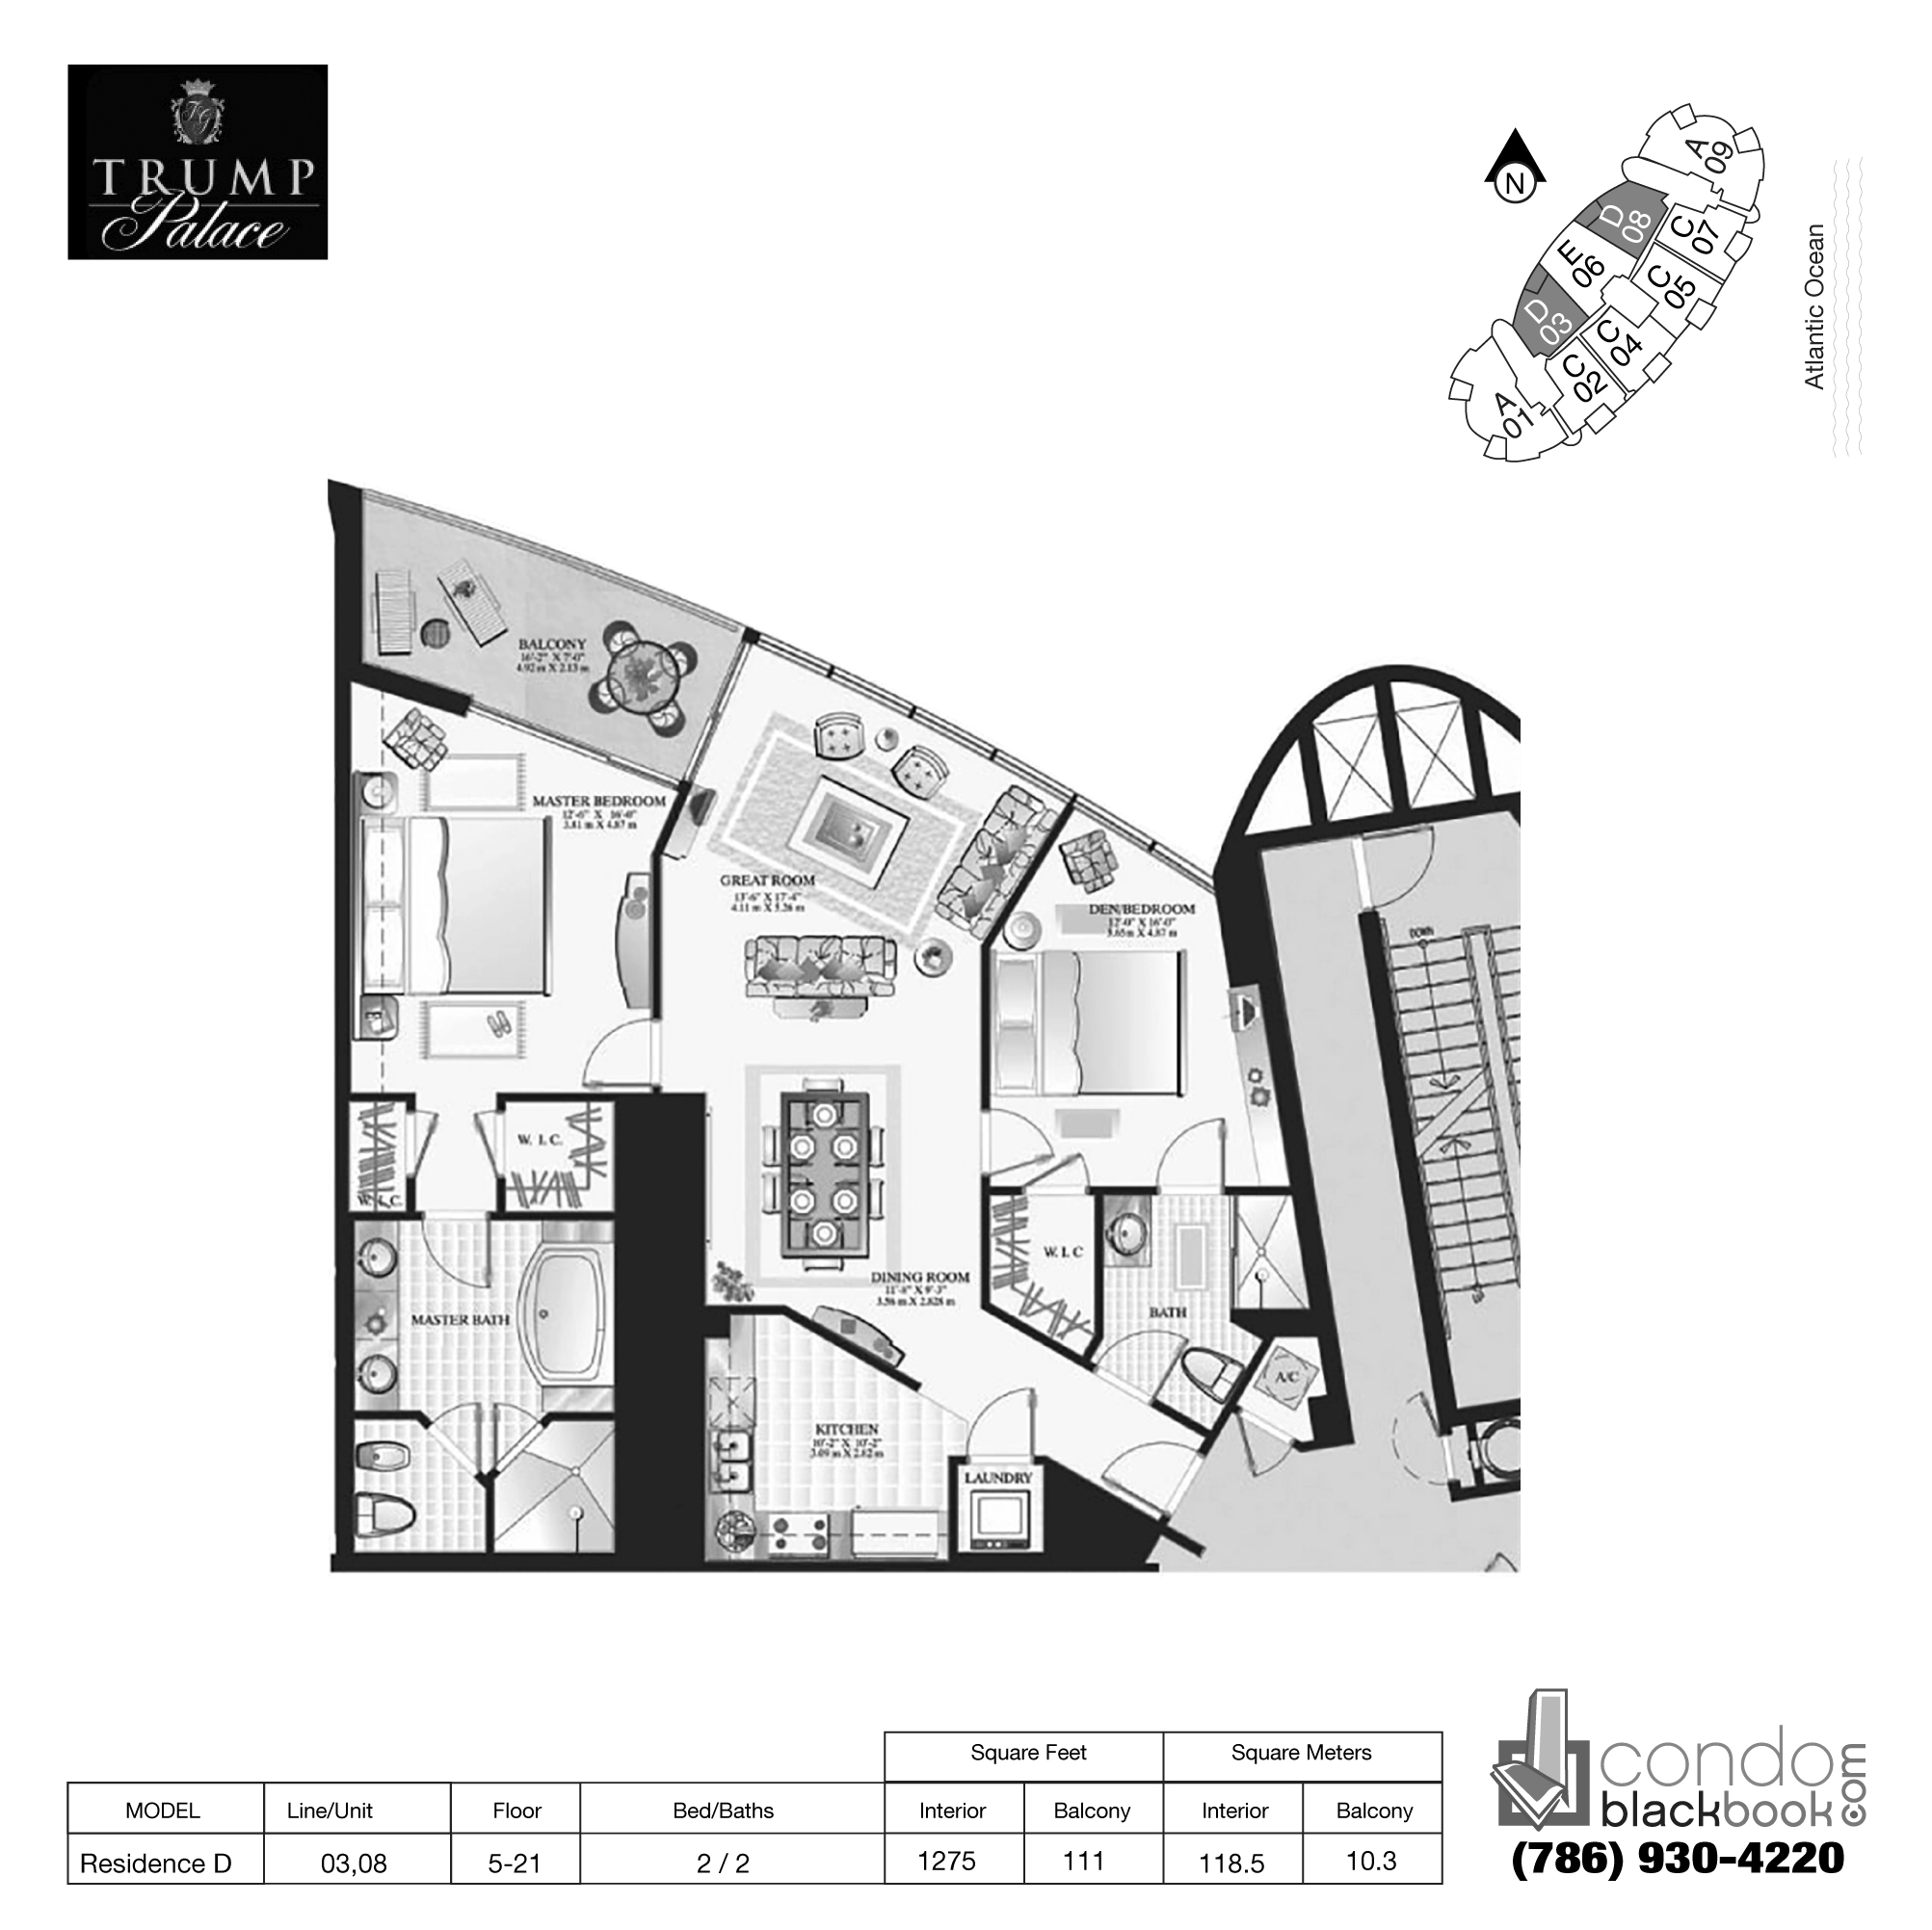 Floor plan for Trump Palace Sunny Isles Beach, model Res. D, line 03,08, 2 / 2 bedrooms, 1275 sq ft